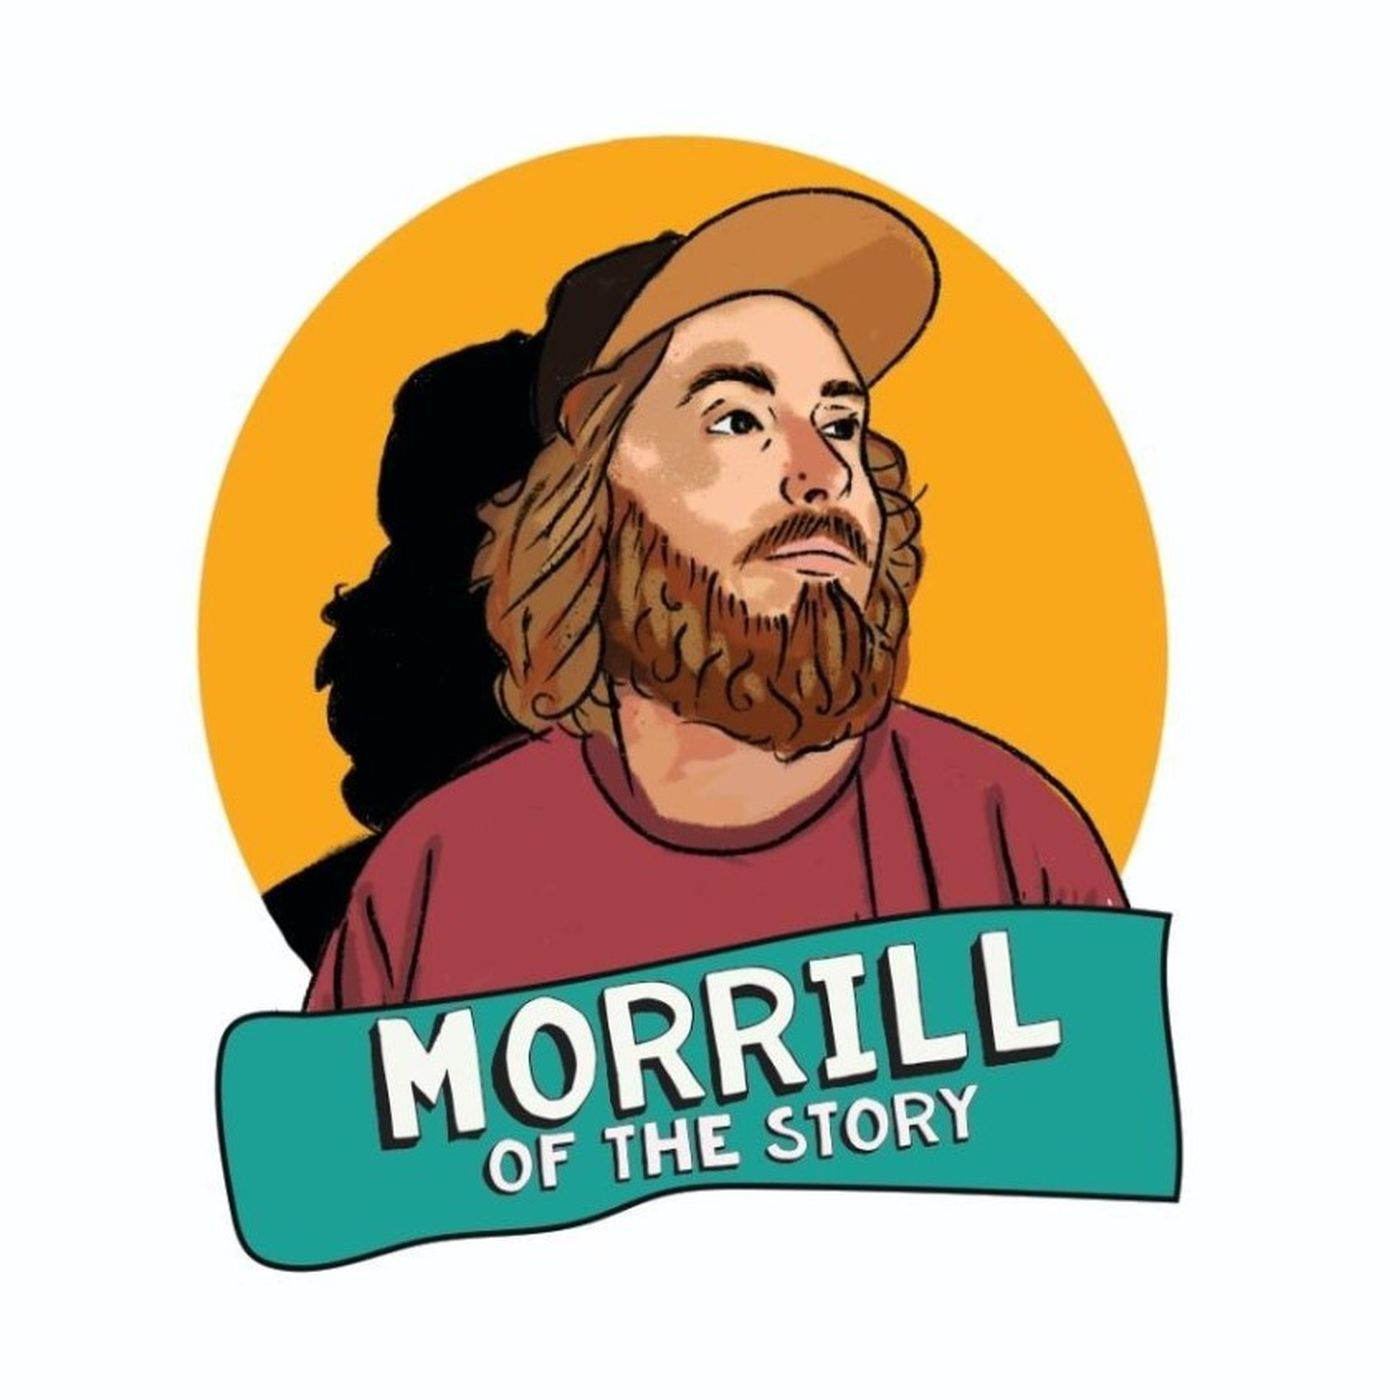 The Morrill of the Story